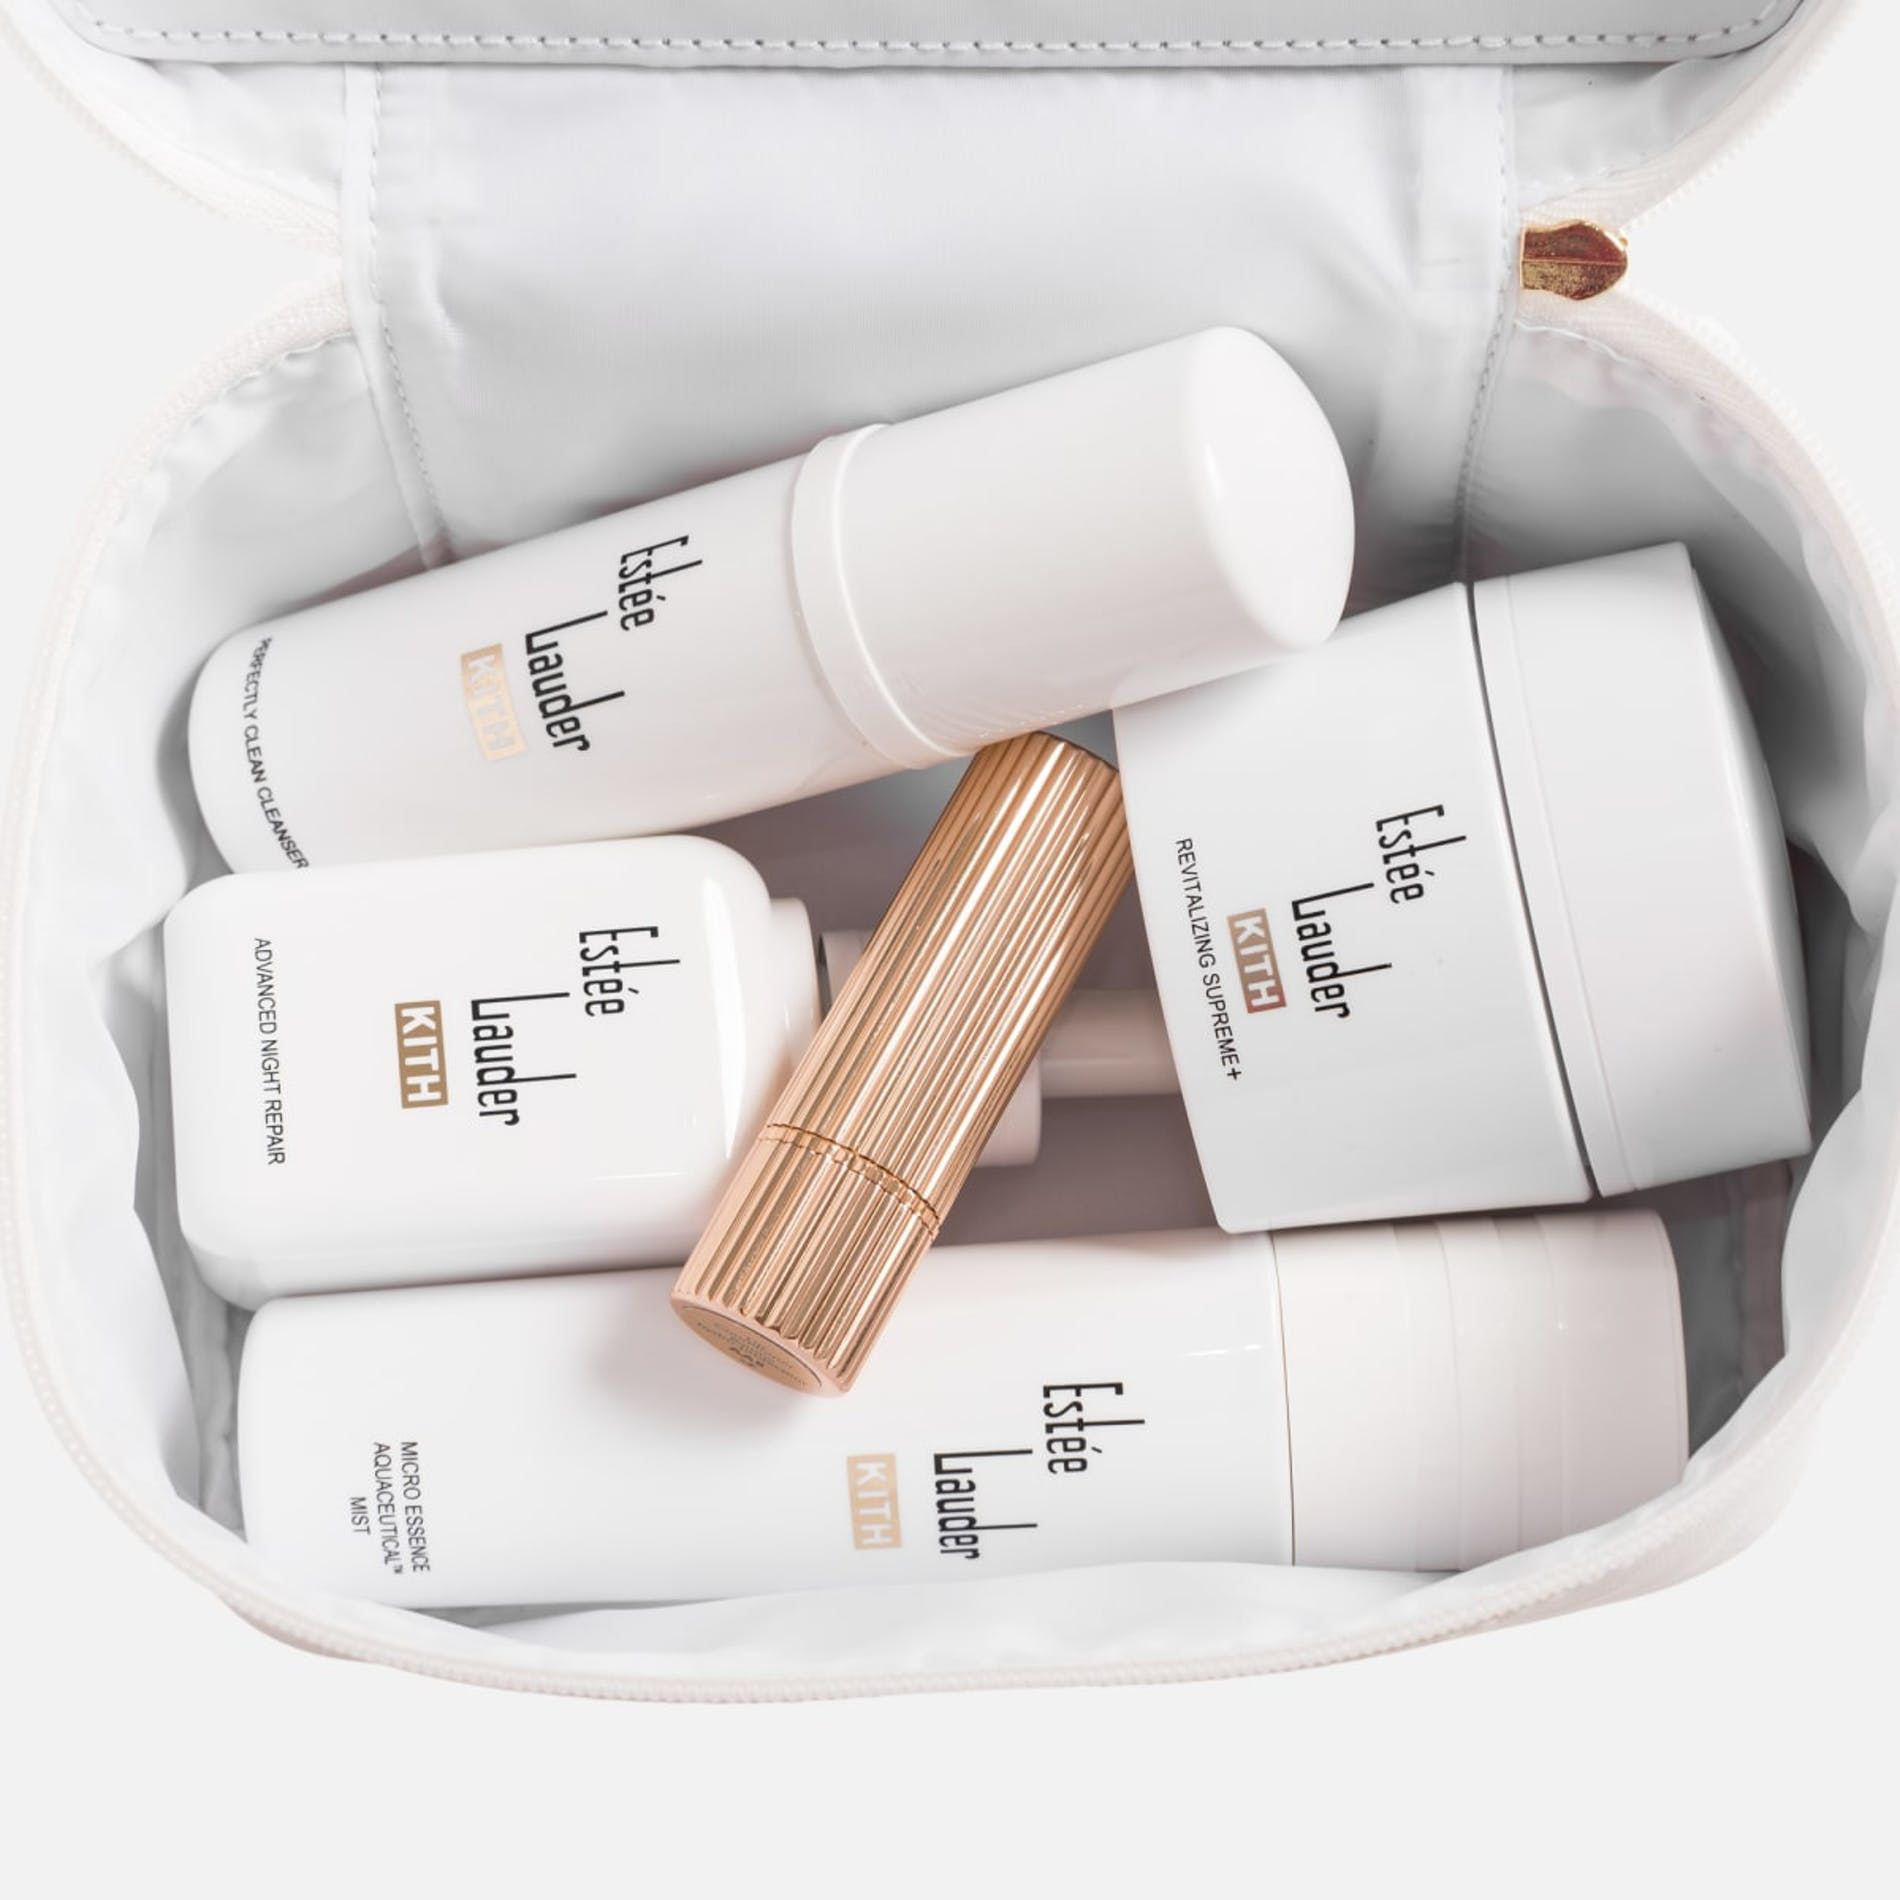 1629347158192999 kith estee lauder products